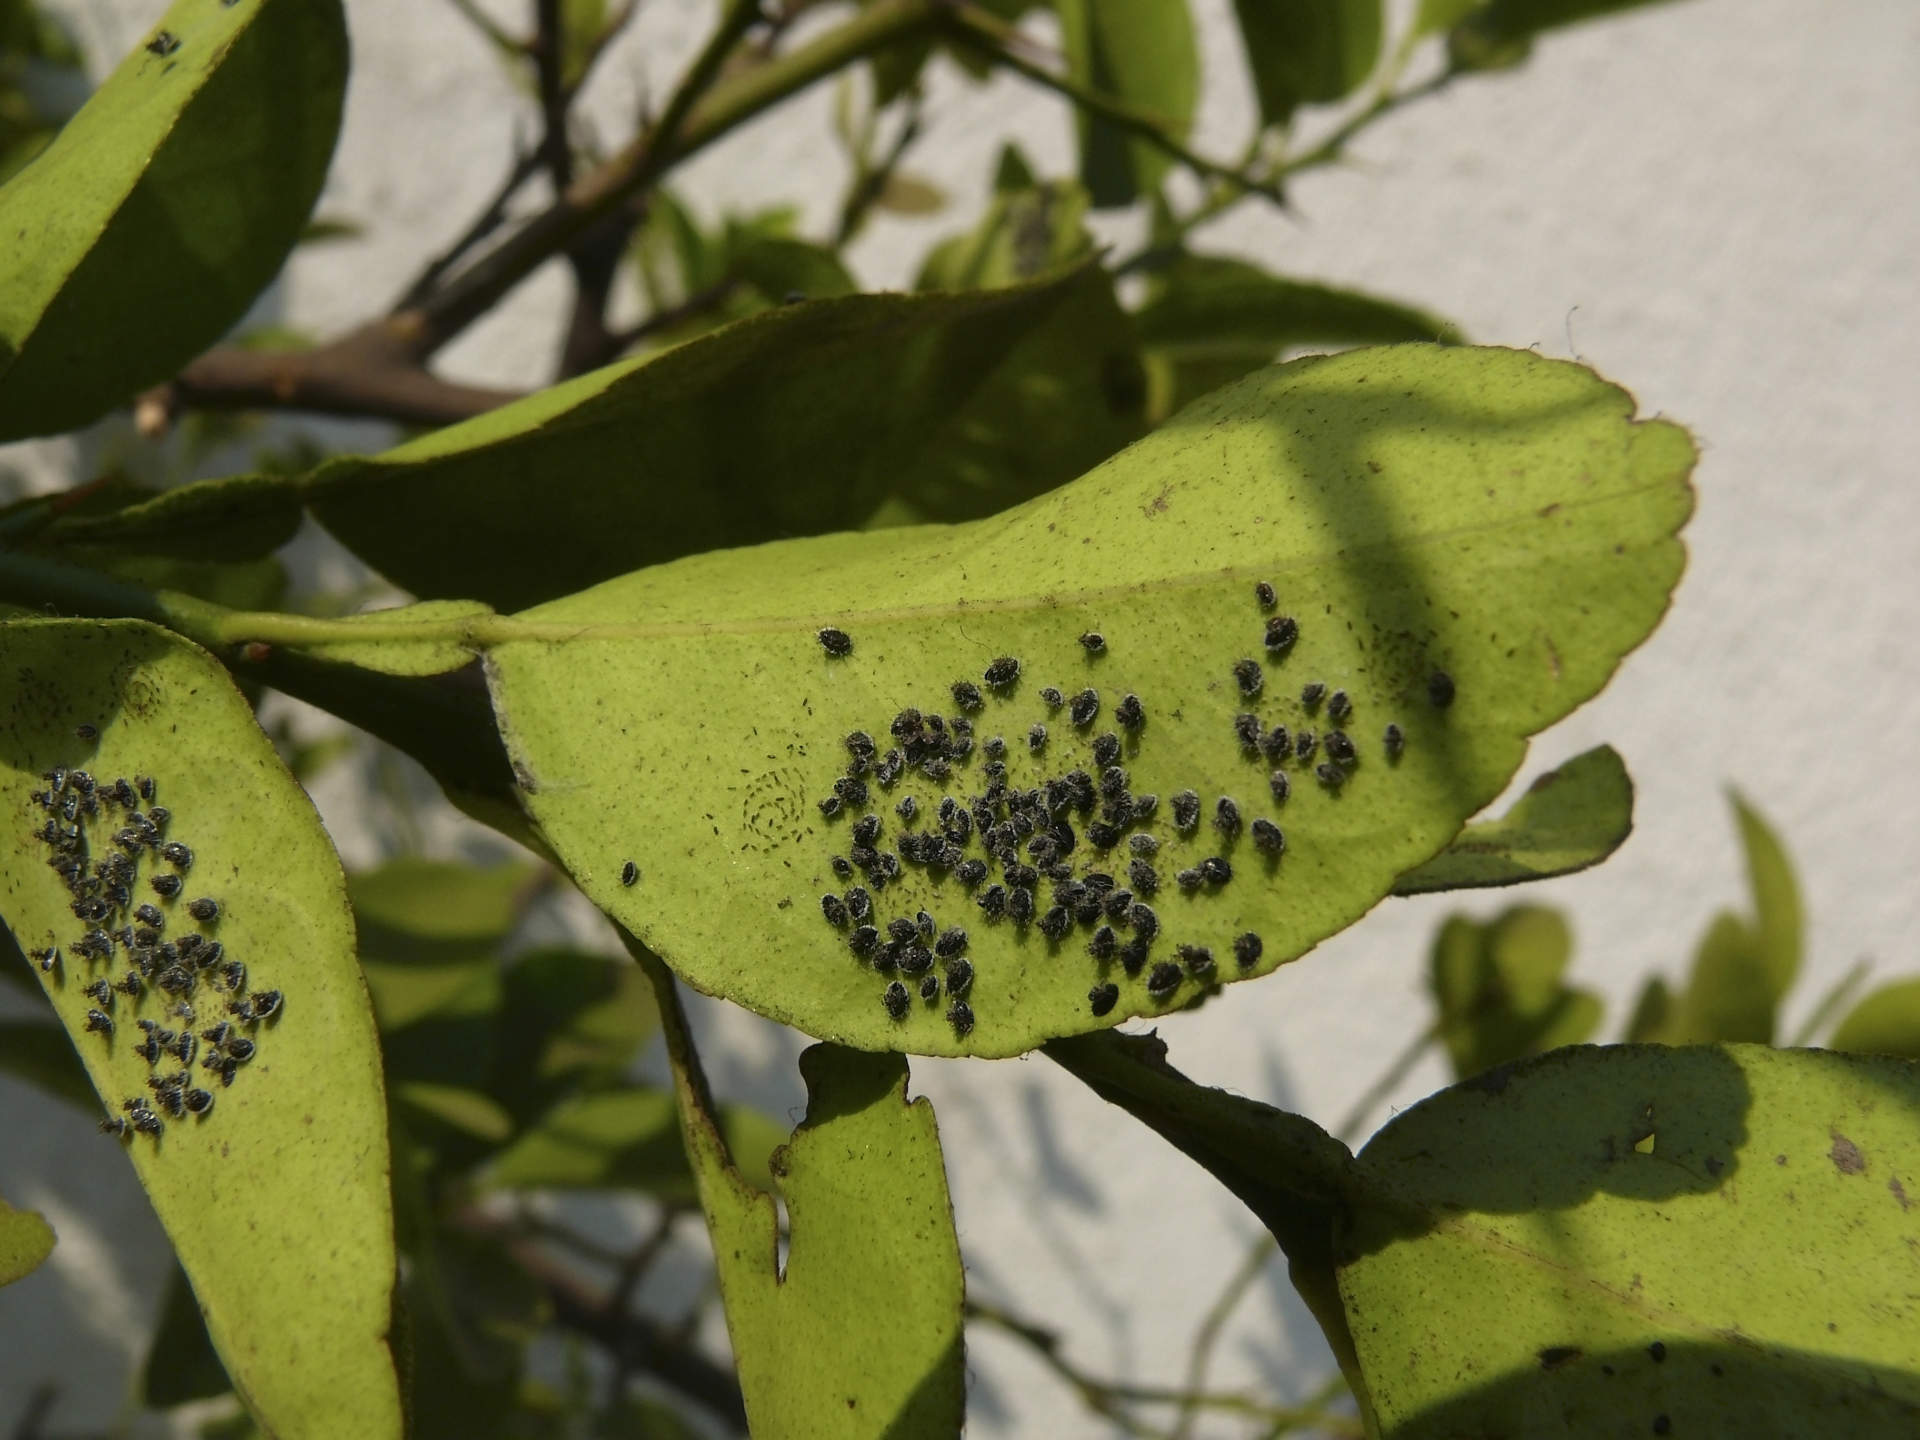 mass of lace bugs on leaf